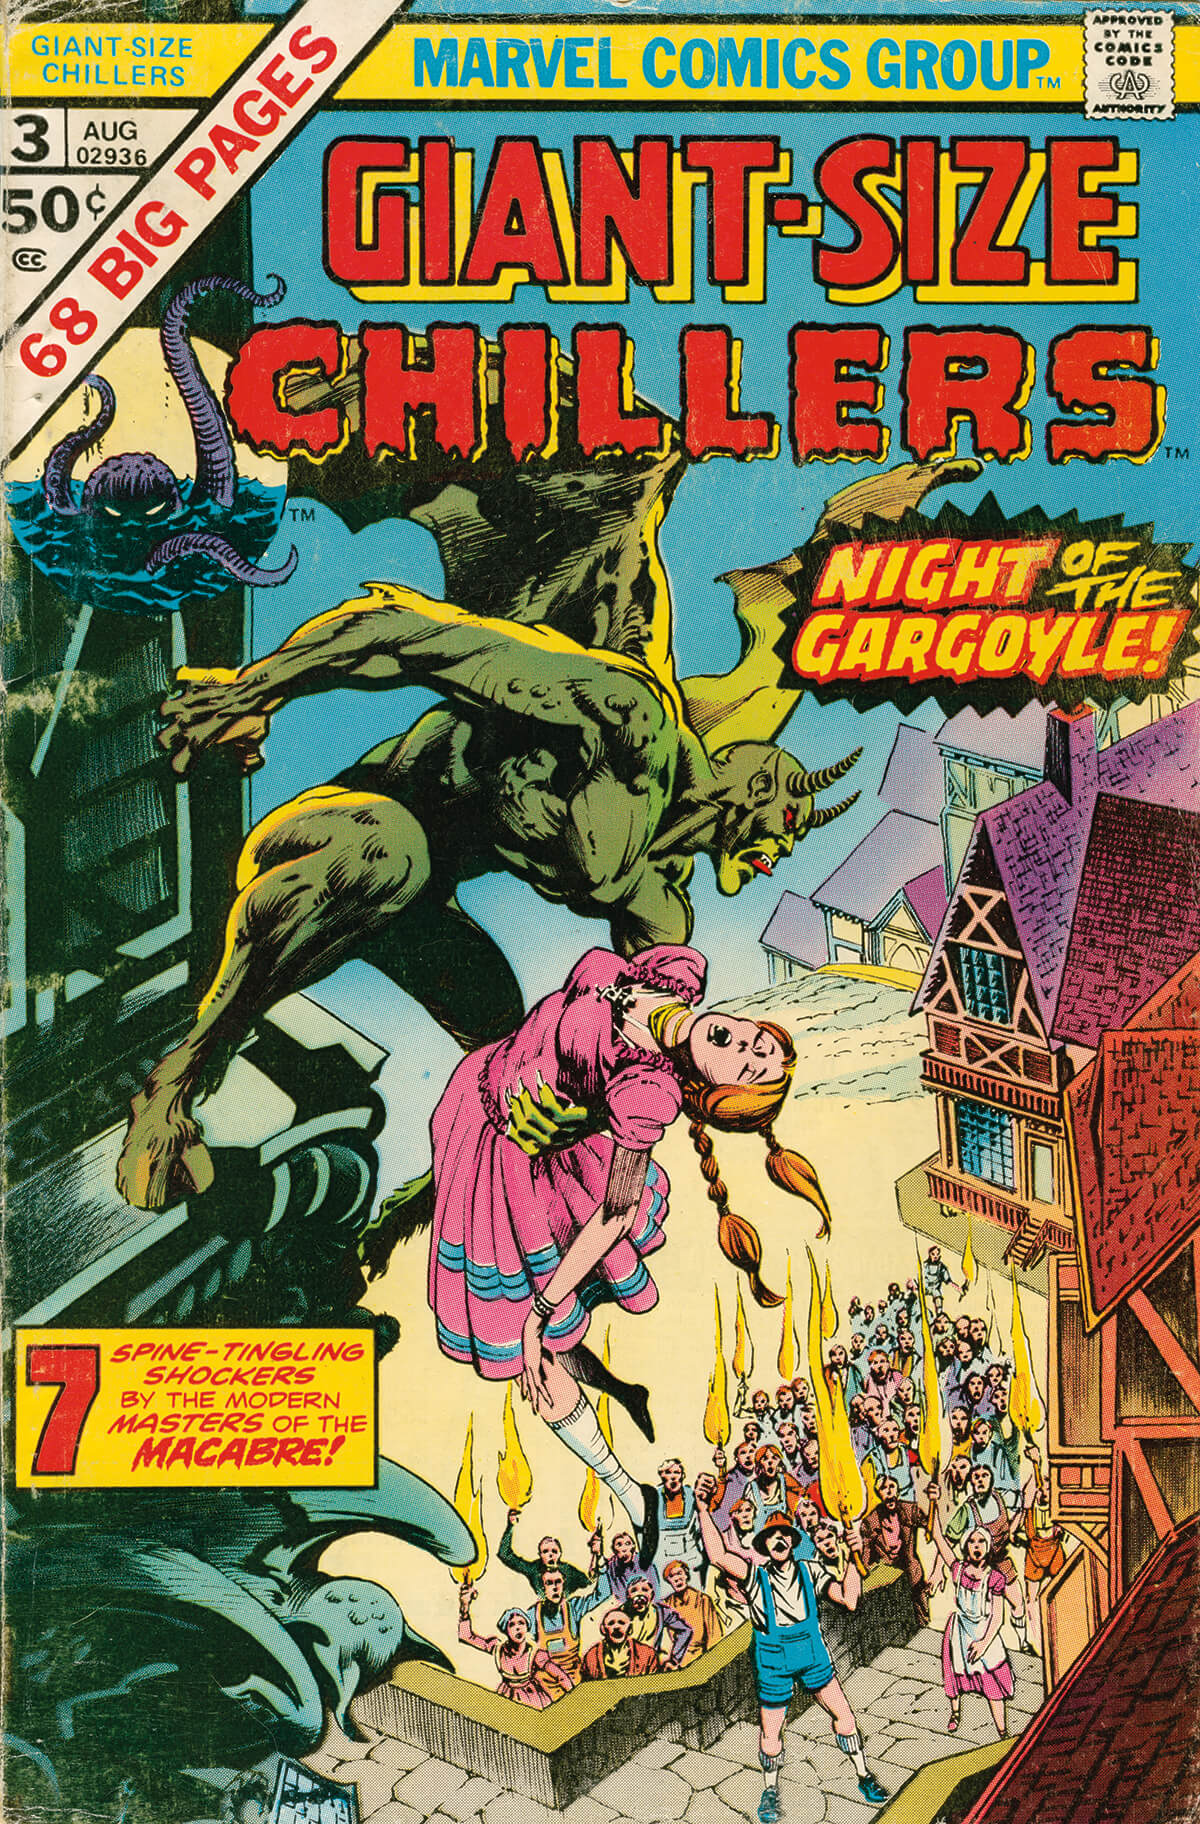 Giant-Size Chillers Cover by Ed Hannigan and Bernie Wrightson